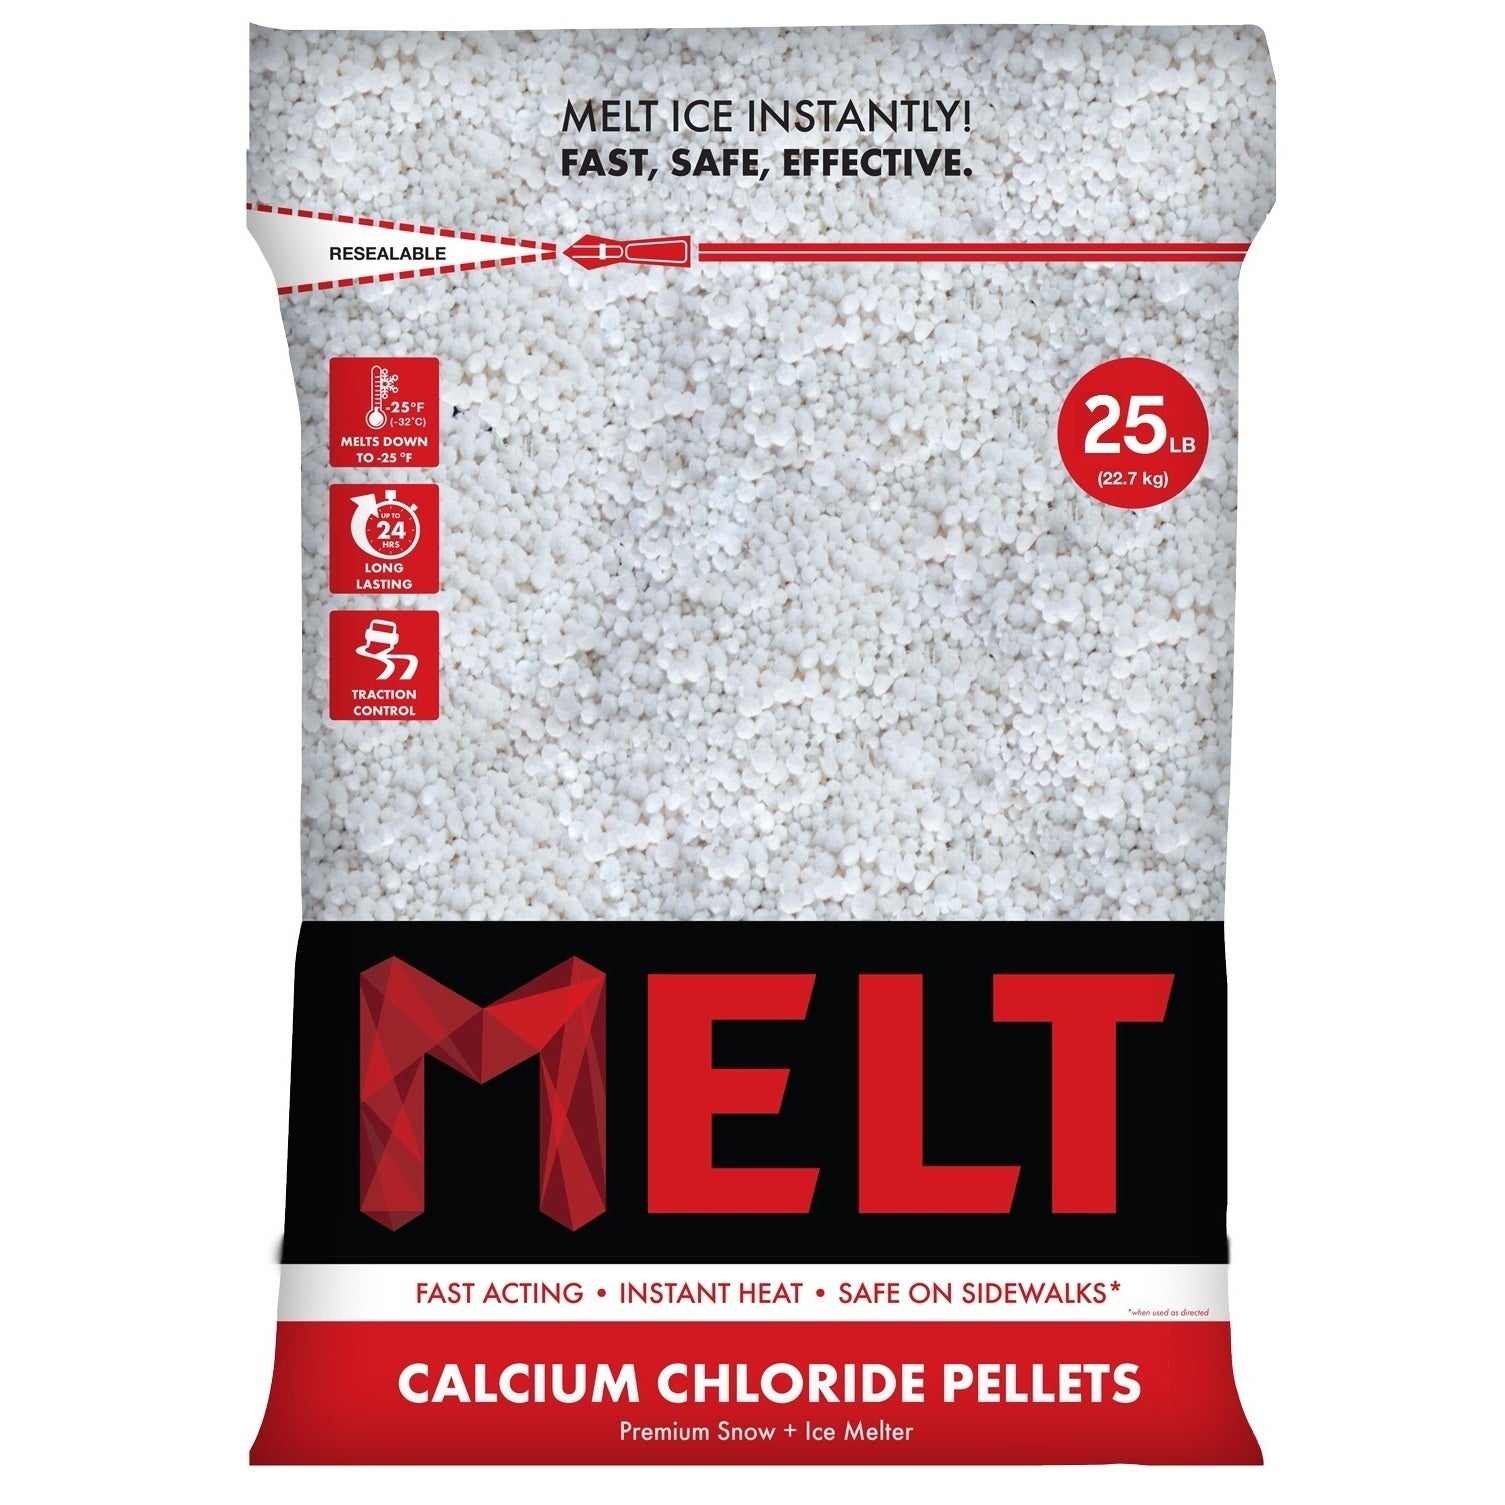 Snow Joe 25-LB Calcium Chloride Pellets Ice Melter - Rese...